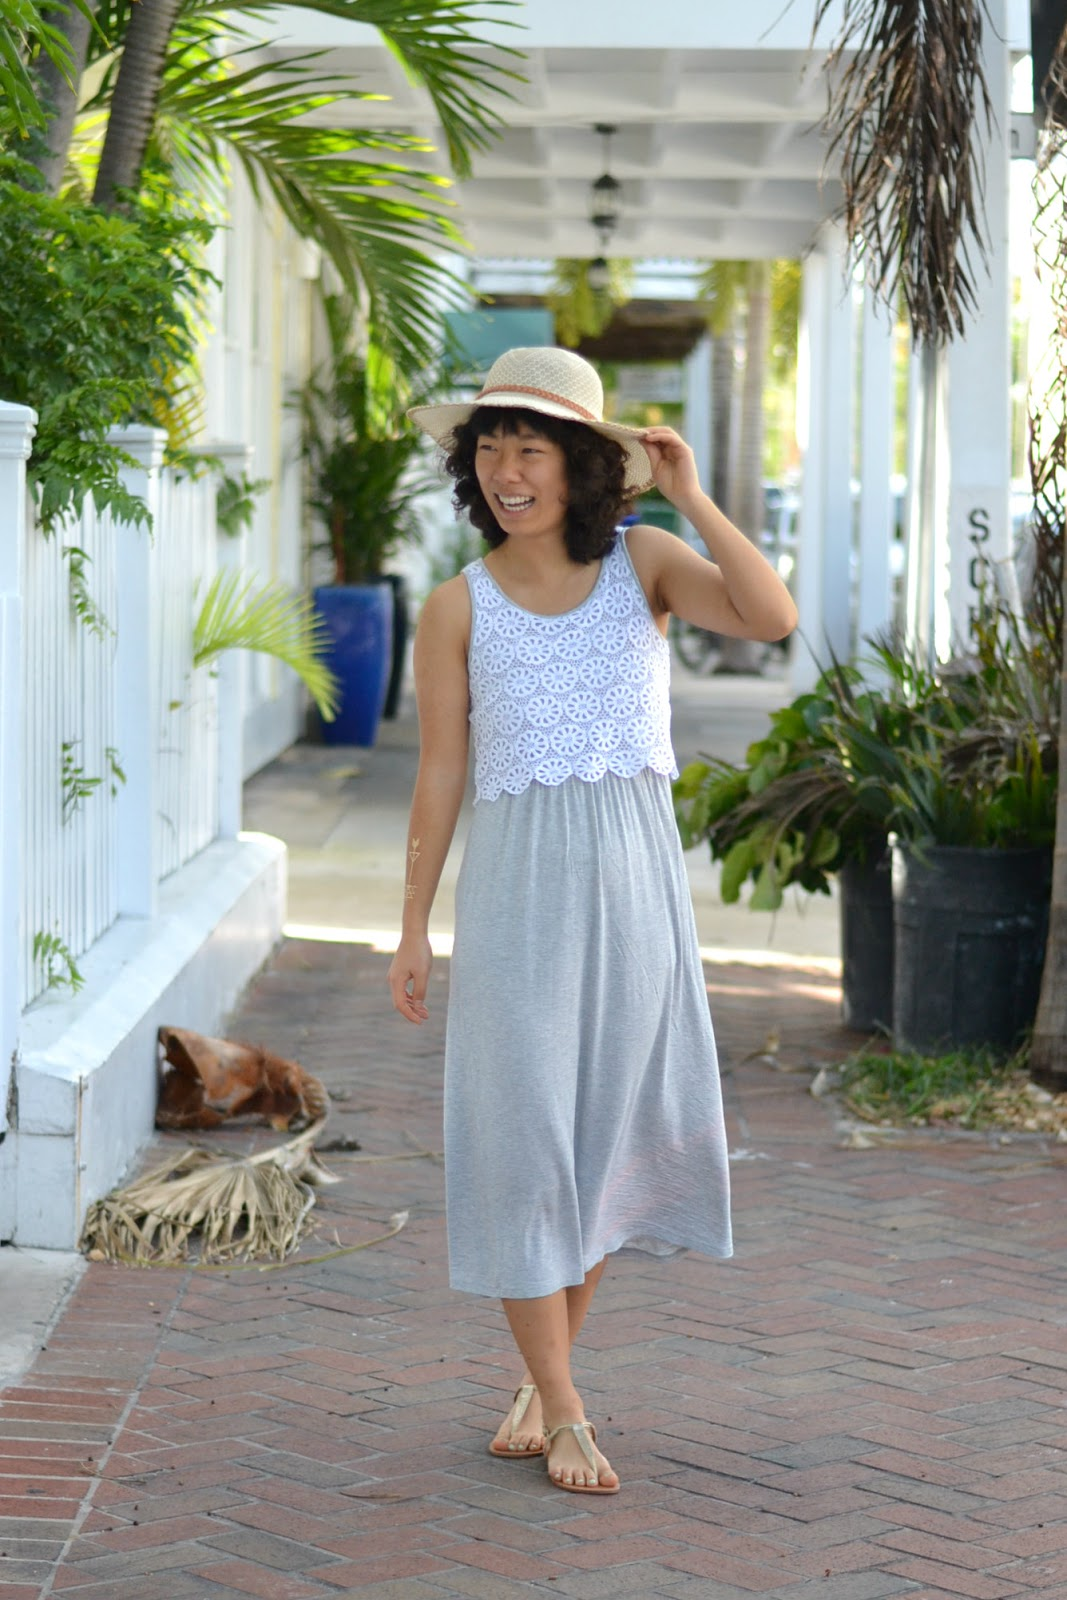 summer outfit sun hat maxi dress